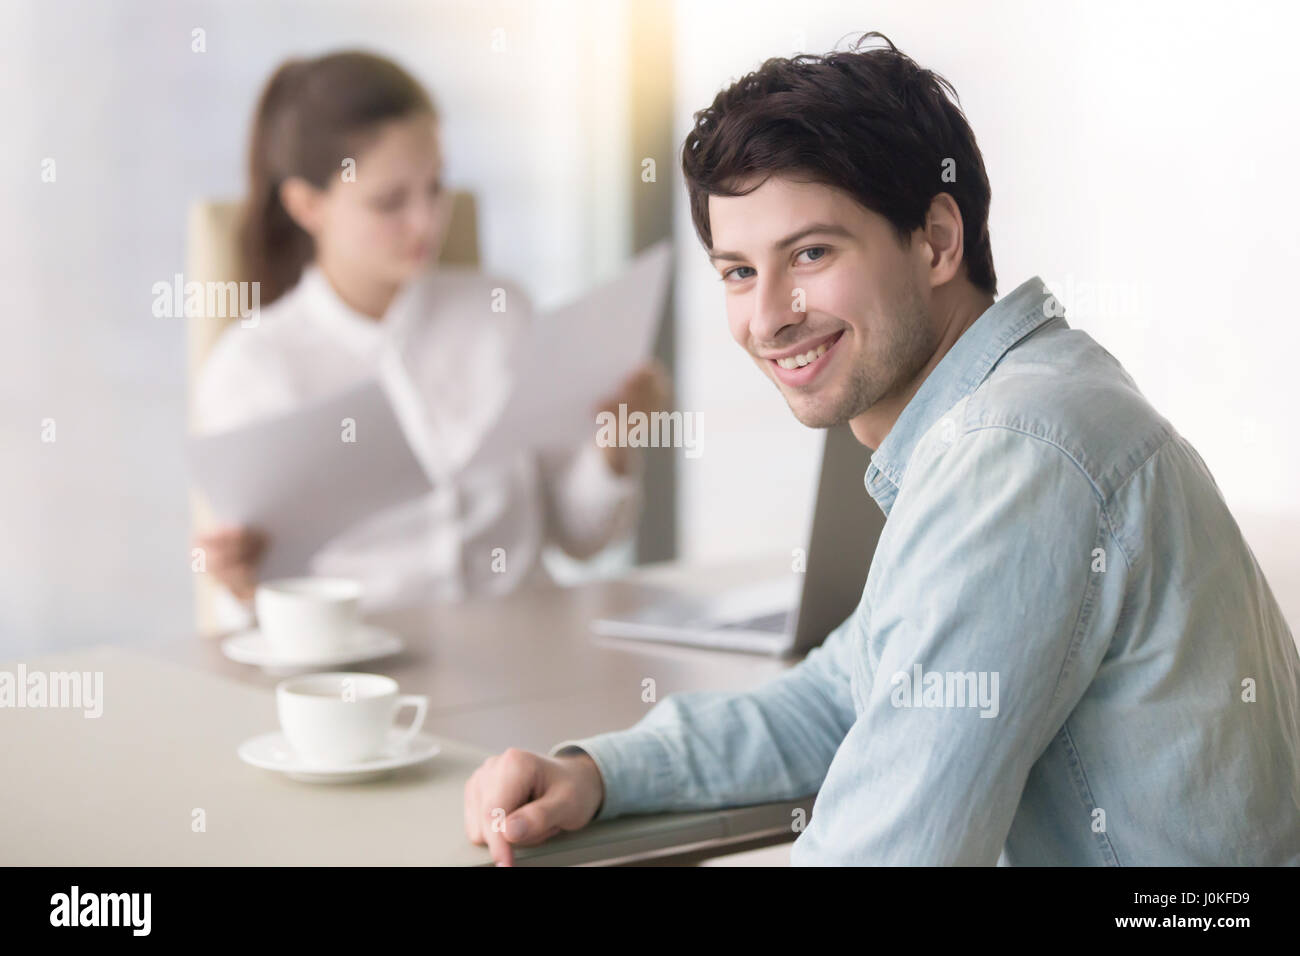 Smiling successful candidate searching for a job having employme - Stock Image